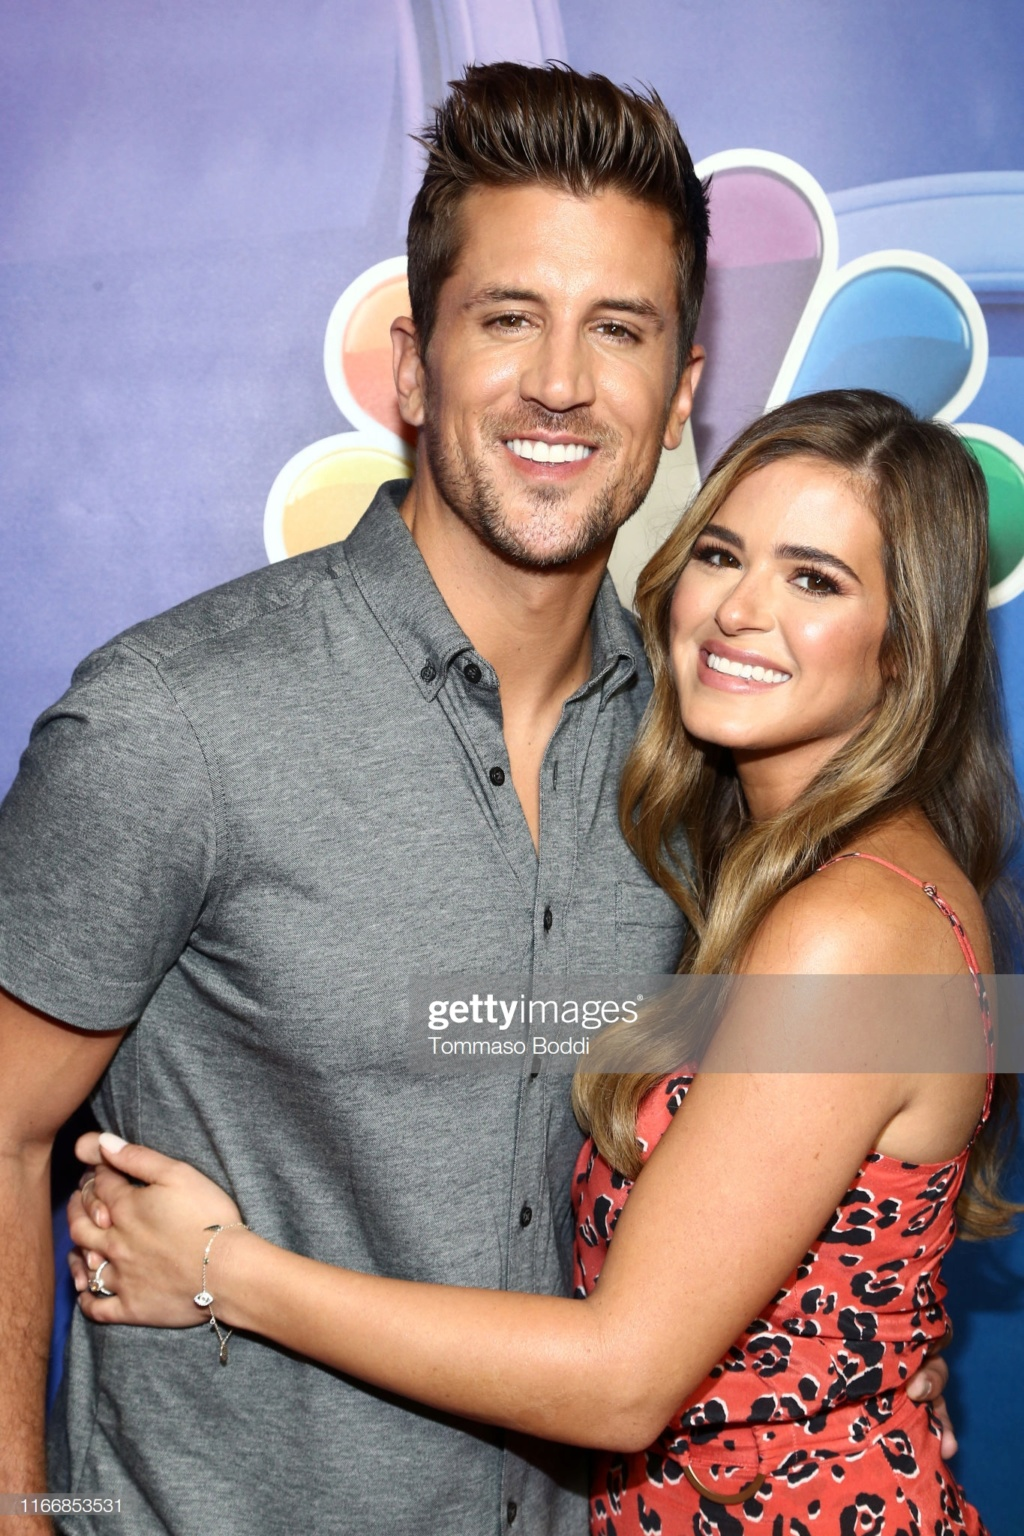 JoJo Fletcher - Jordan Rodgers - FAN Forum - Discussion - #20 - Page 75 94b4e210